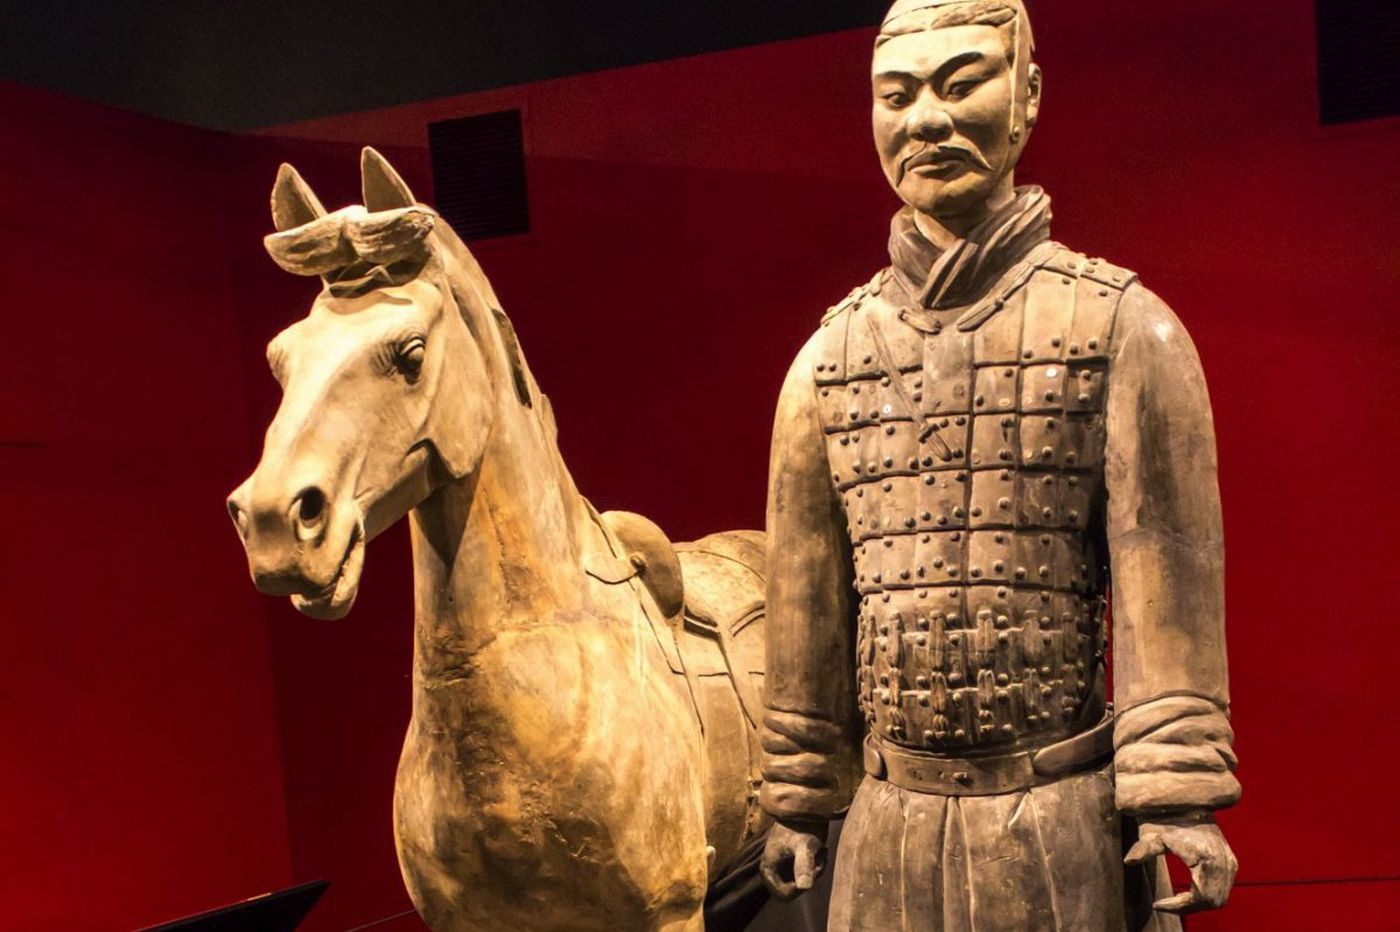 Franklin Institute thumb thief will face trial again for disfiguring Chinese terra-cotta warrior